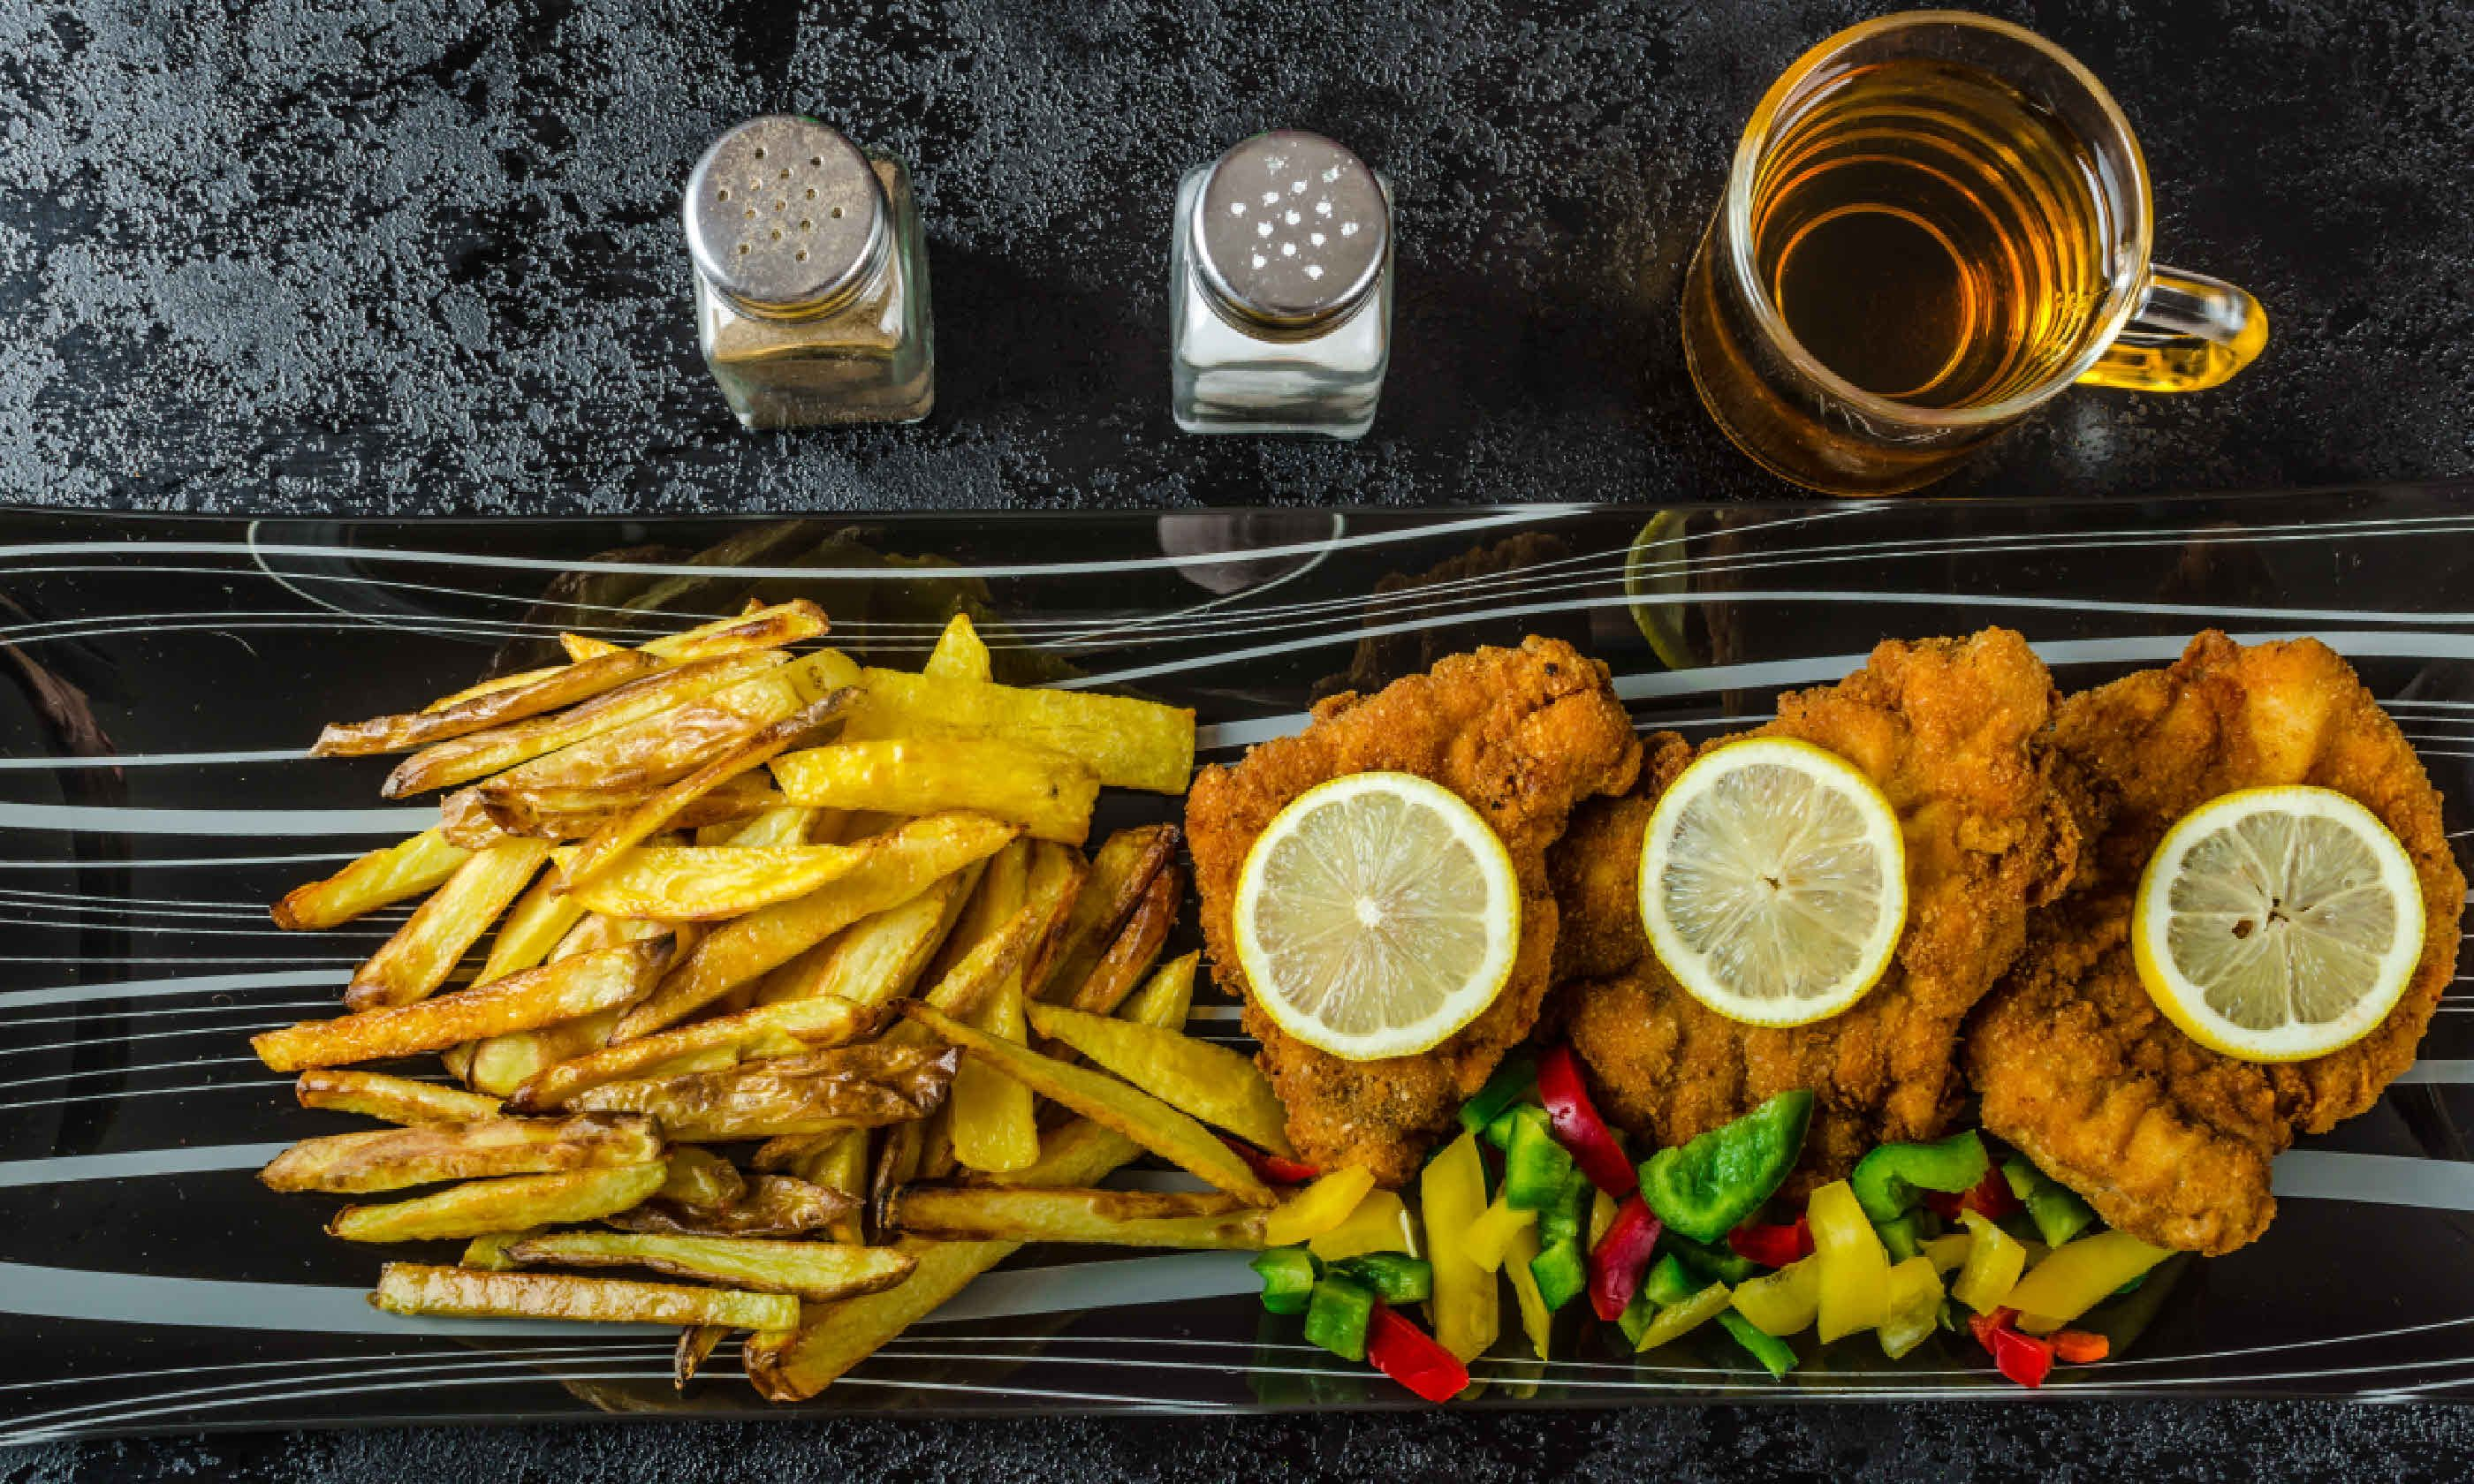 Schnitzel with french fries (Shutterstock)